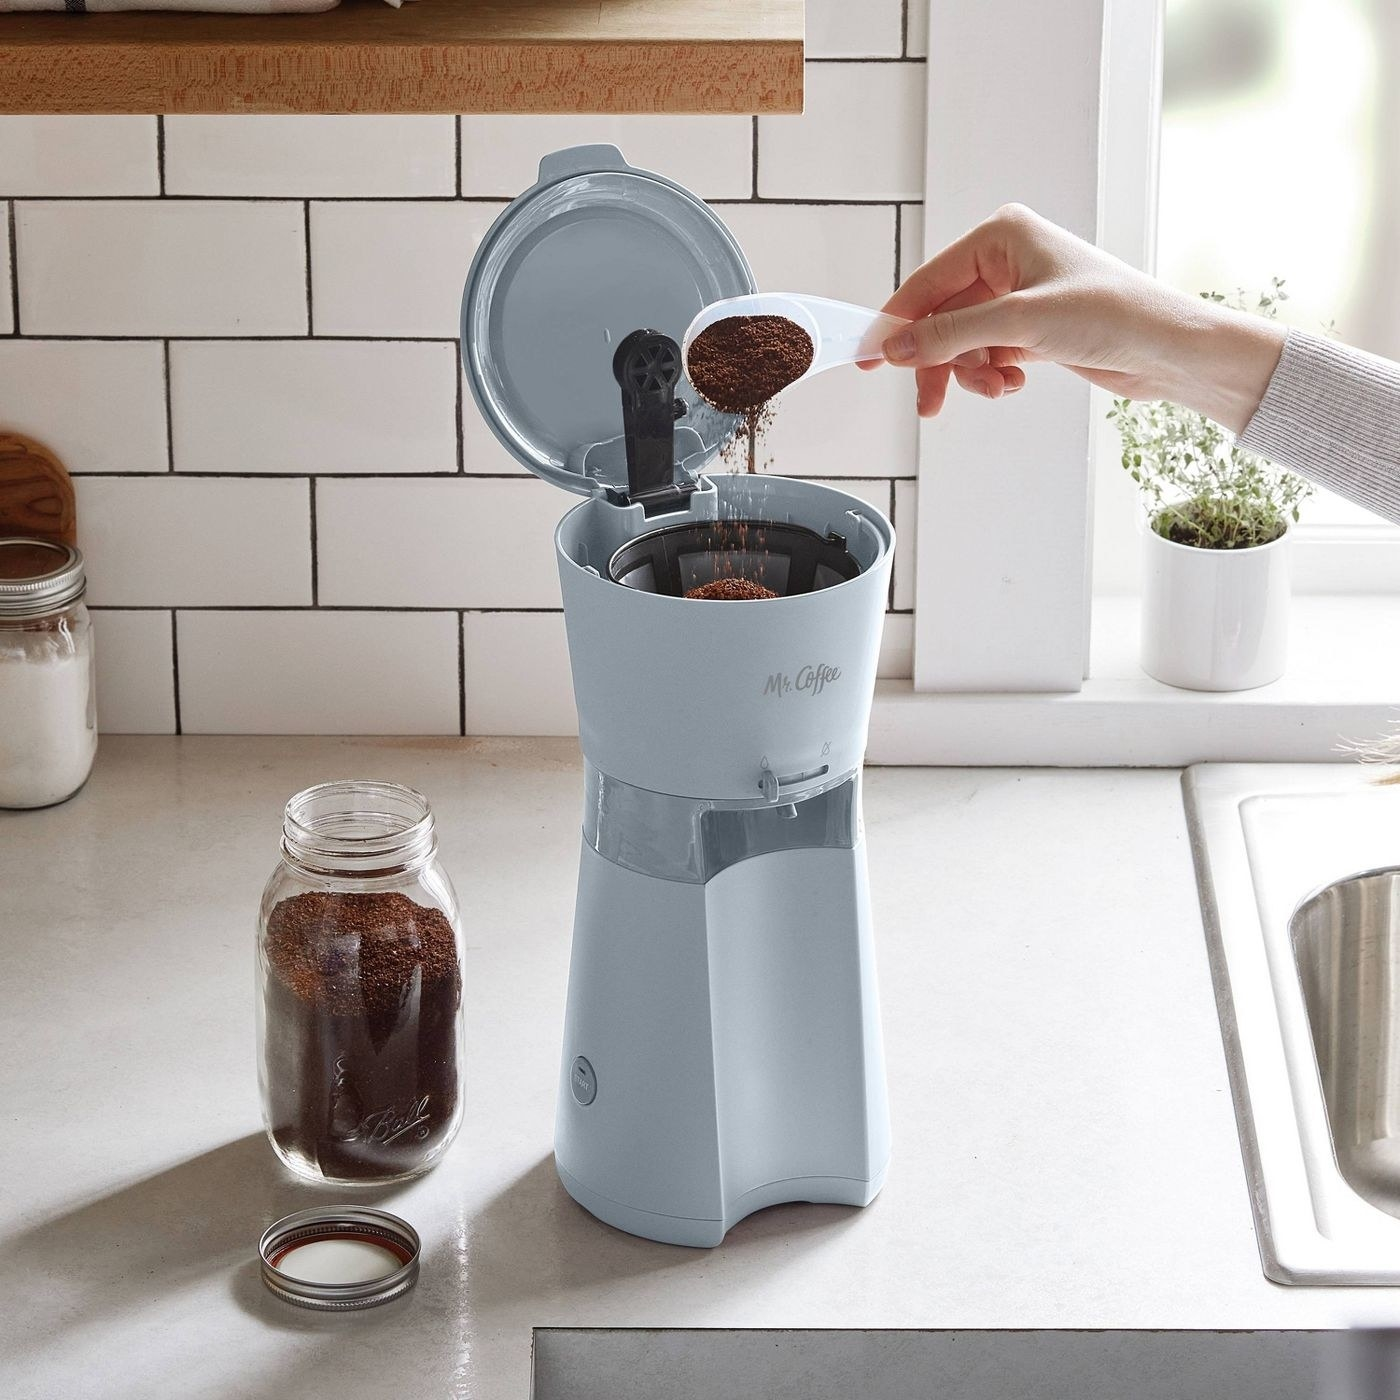 the small grey coffee maker on a counter